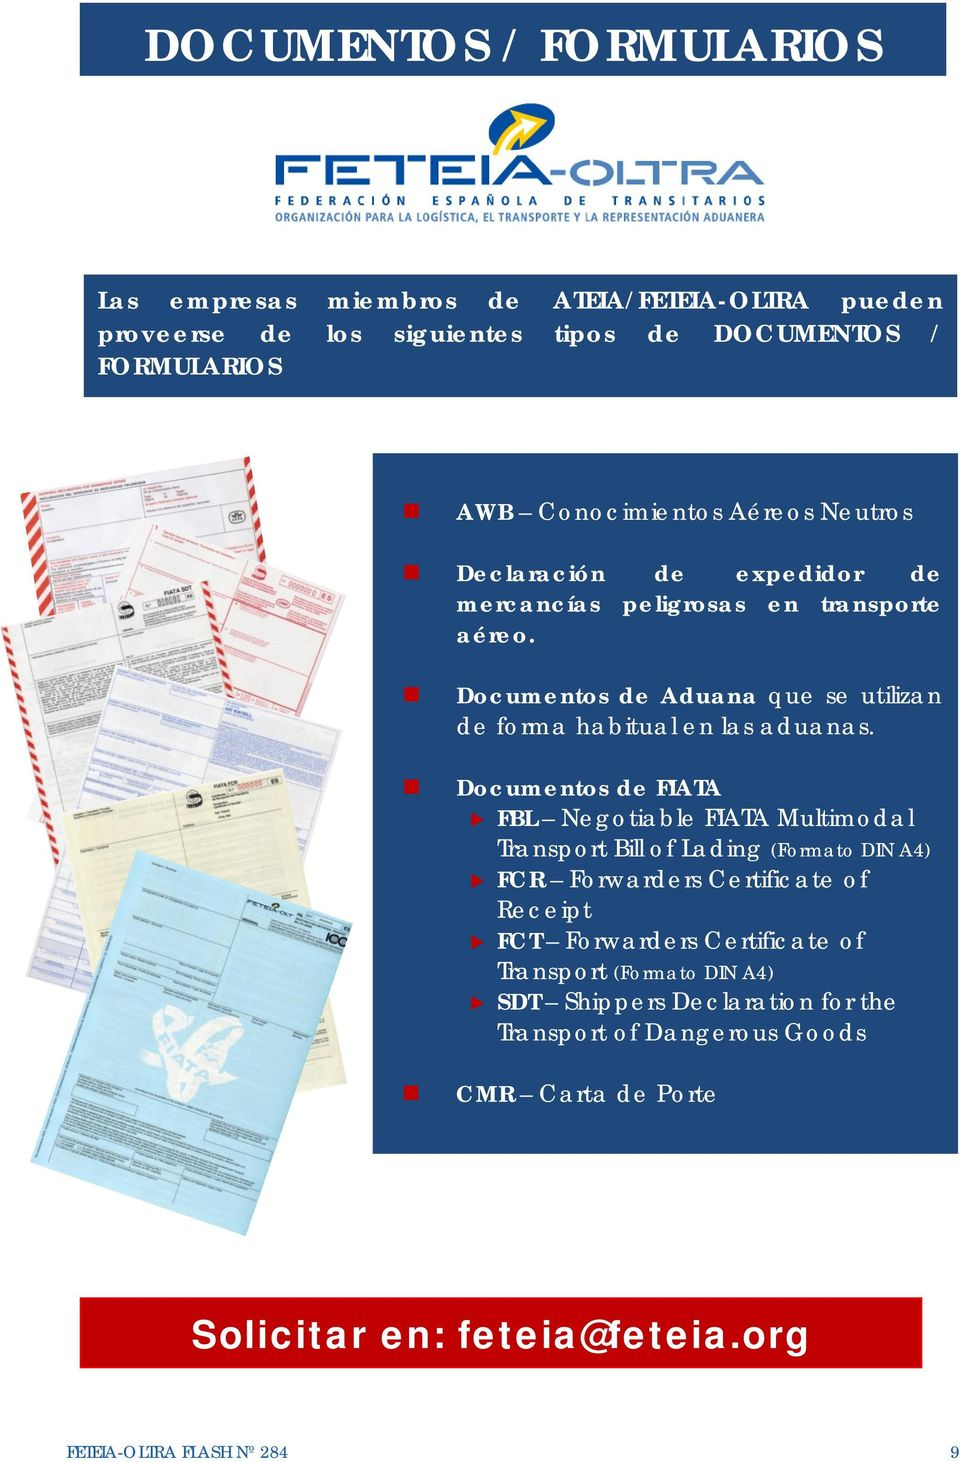 Documentos de FIATA FBL Negotiable FIATA Multimodal Transport Bill of Lading (Formato DIN A4) FCR Forwarders Certificate of Receipt FCT Forwarders Certificate